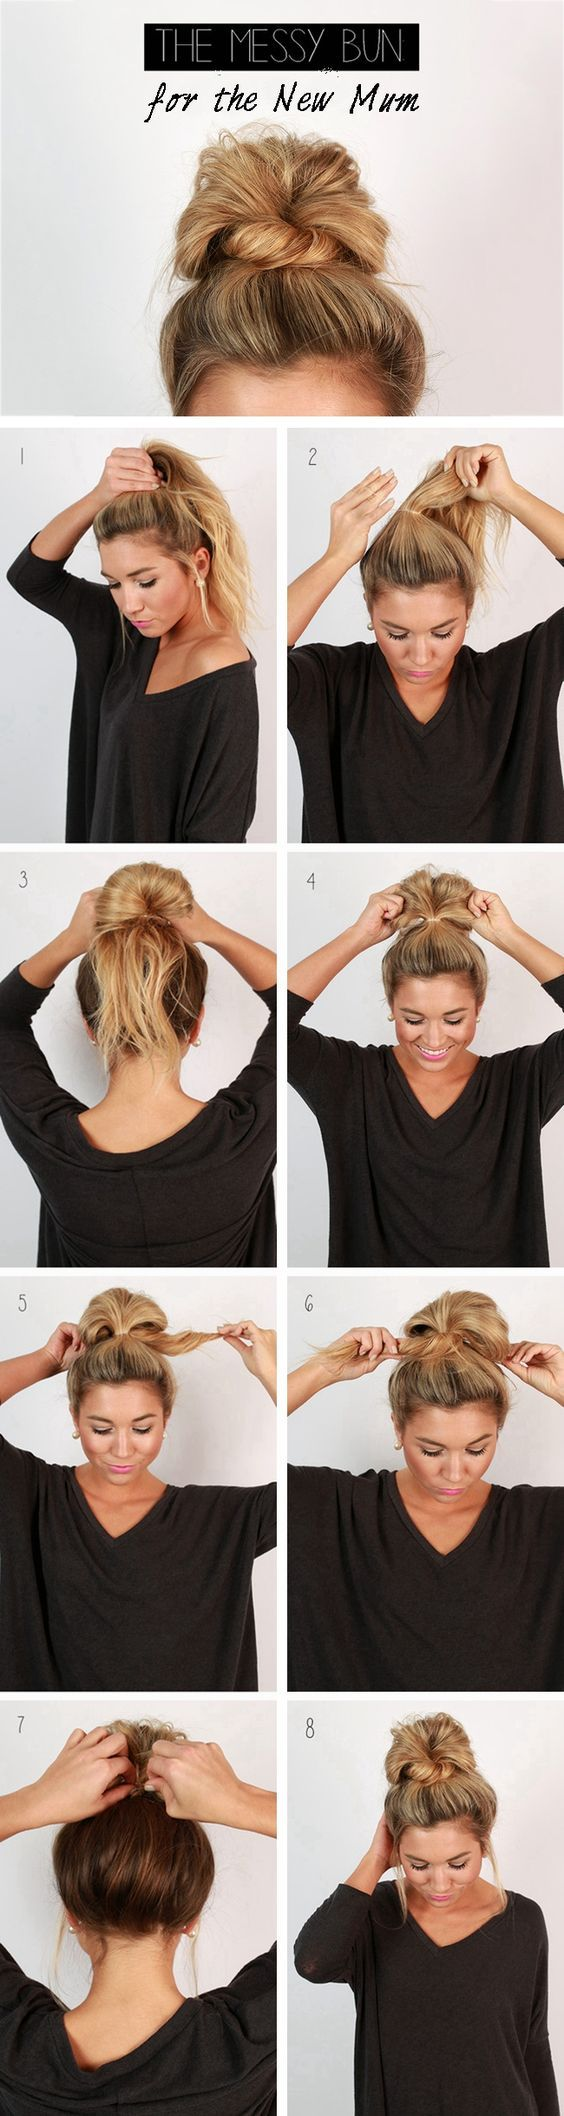 How To Wear A Messy Bun With Tutorials Hairstyles Weekly Hair Styles Long Hair Styles Easy Updo Hairstyles